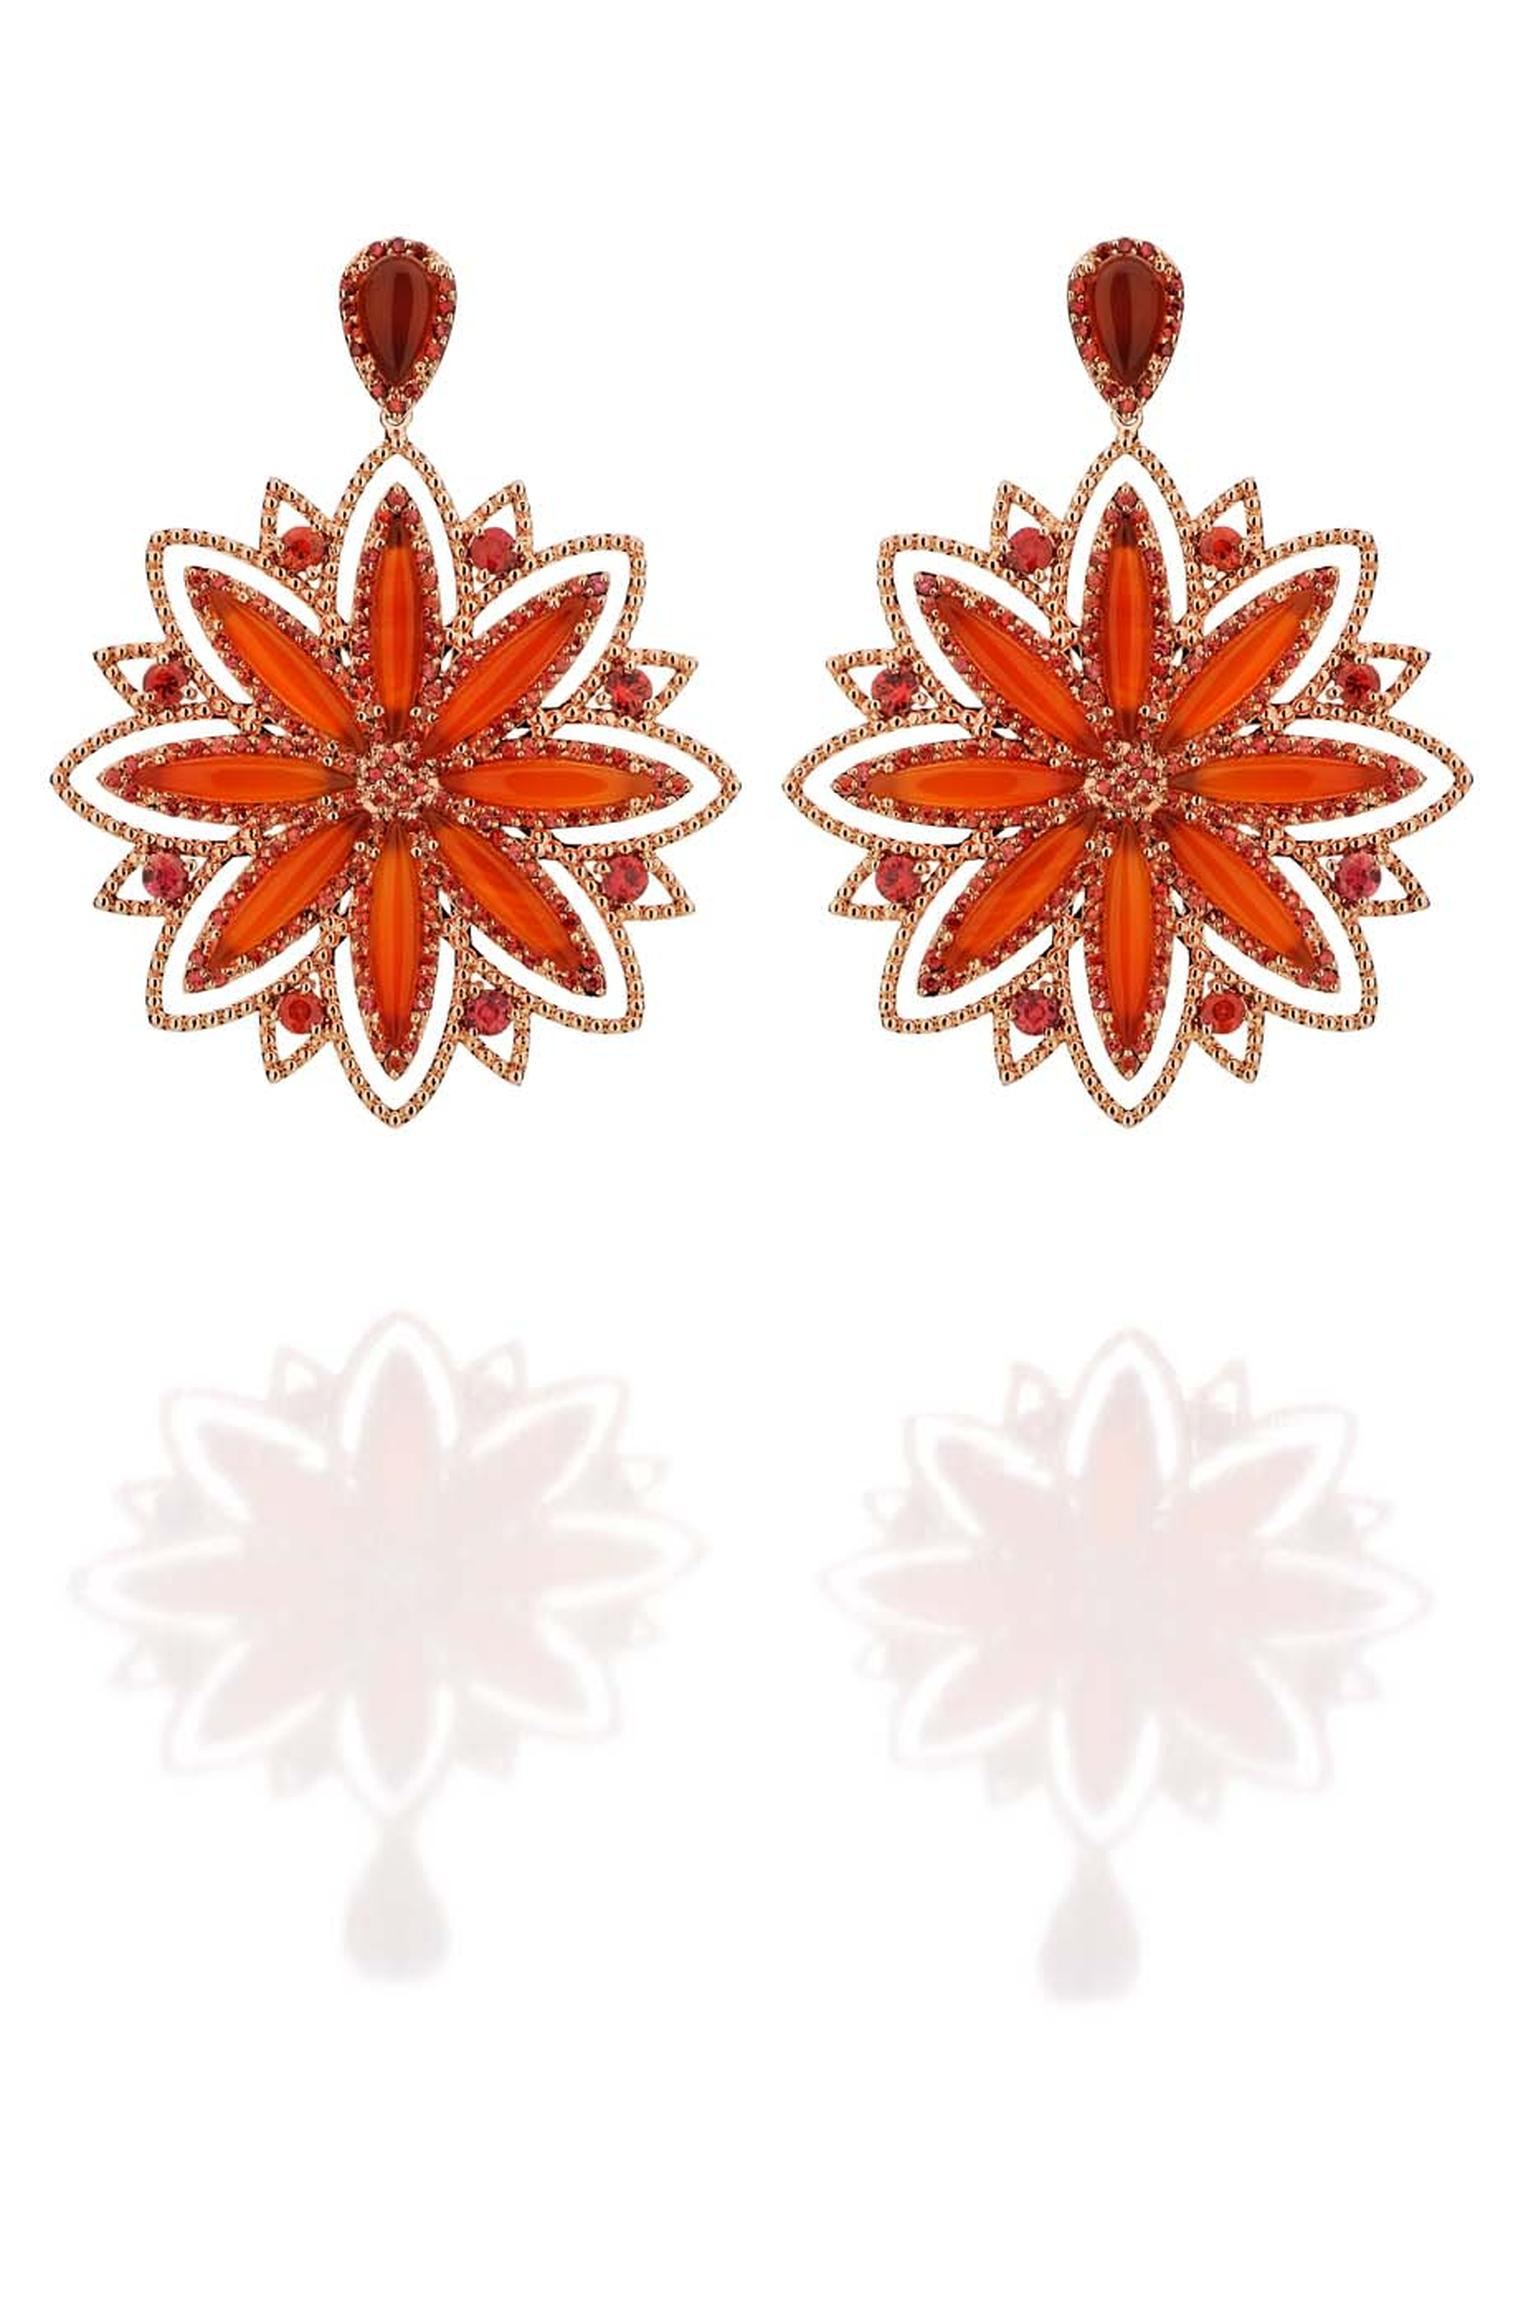 Carla Amorim Russia Collection Sunflower earrings with cornelian and orange sapphires. A flower closely associated with the country, together with Ukraine Russia produces 95% of the world's sunflowers